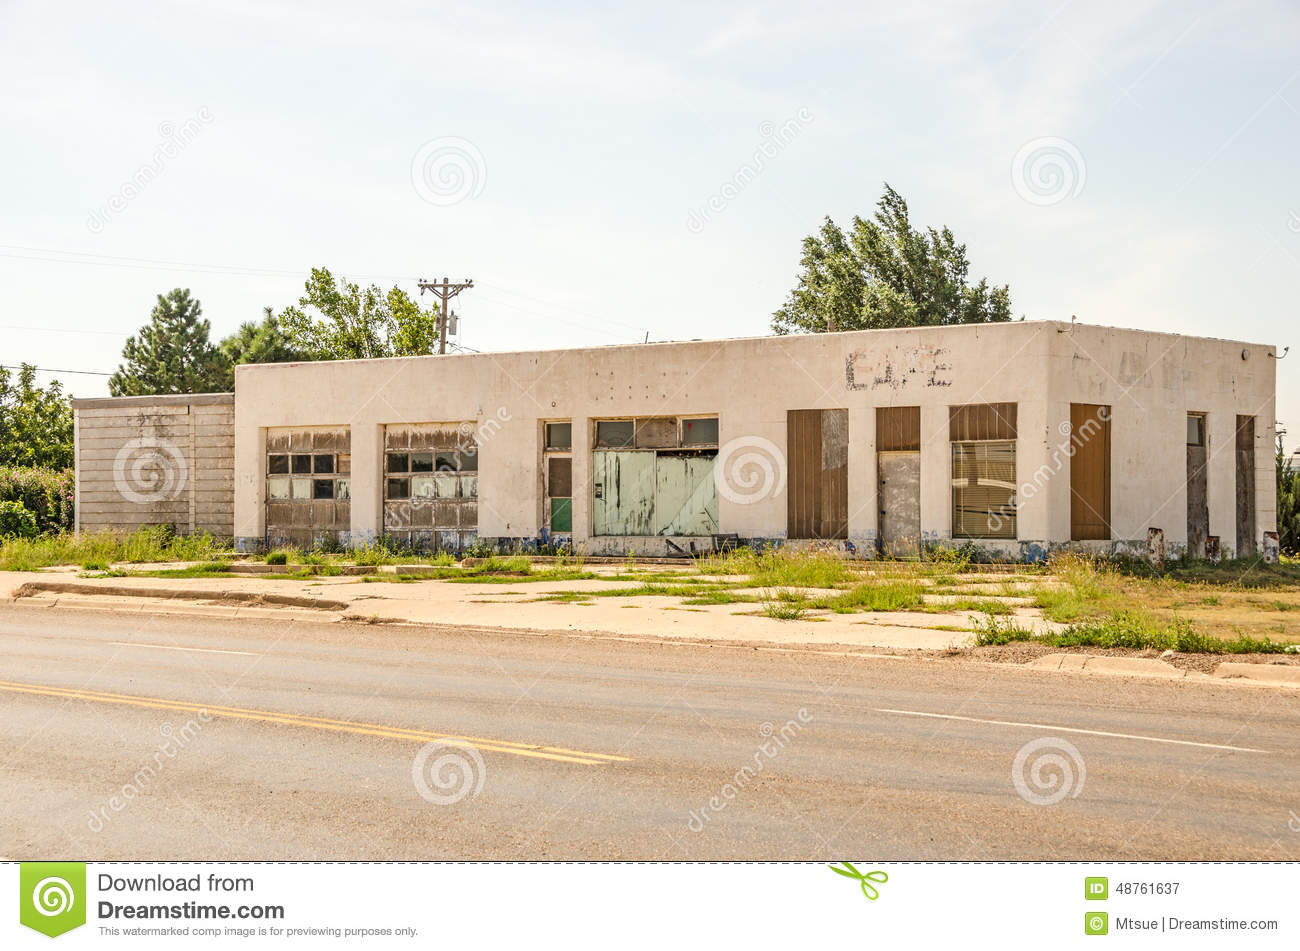 auto repair shop and cafe stock image. image of structure - 48761637